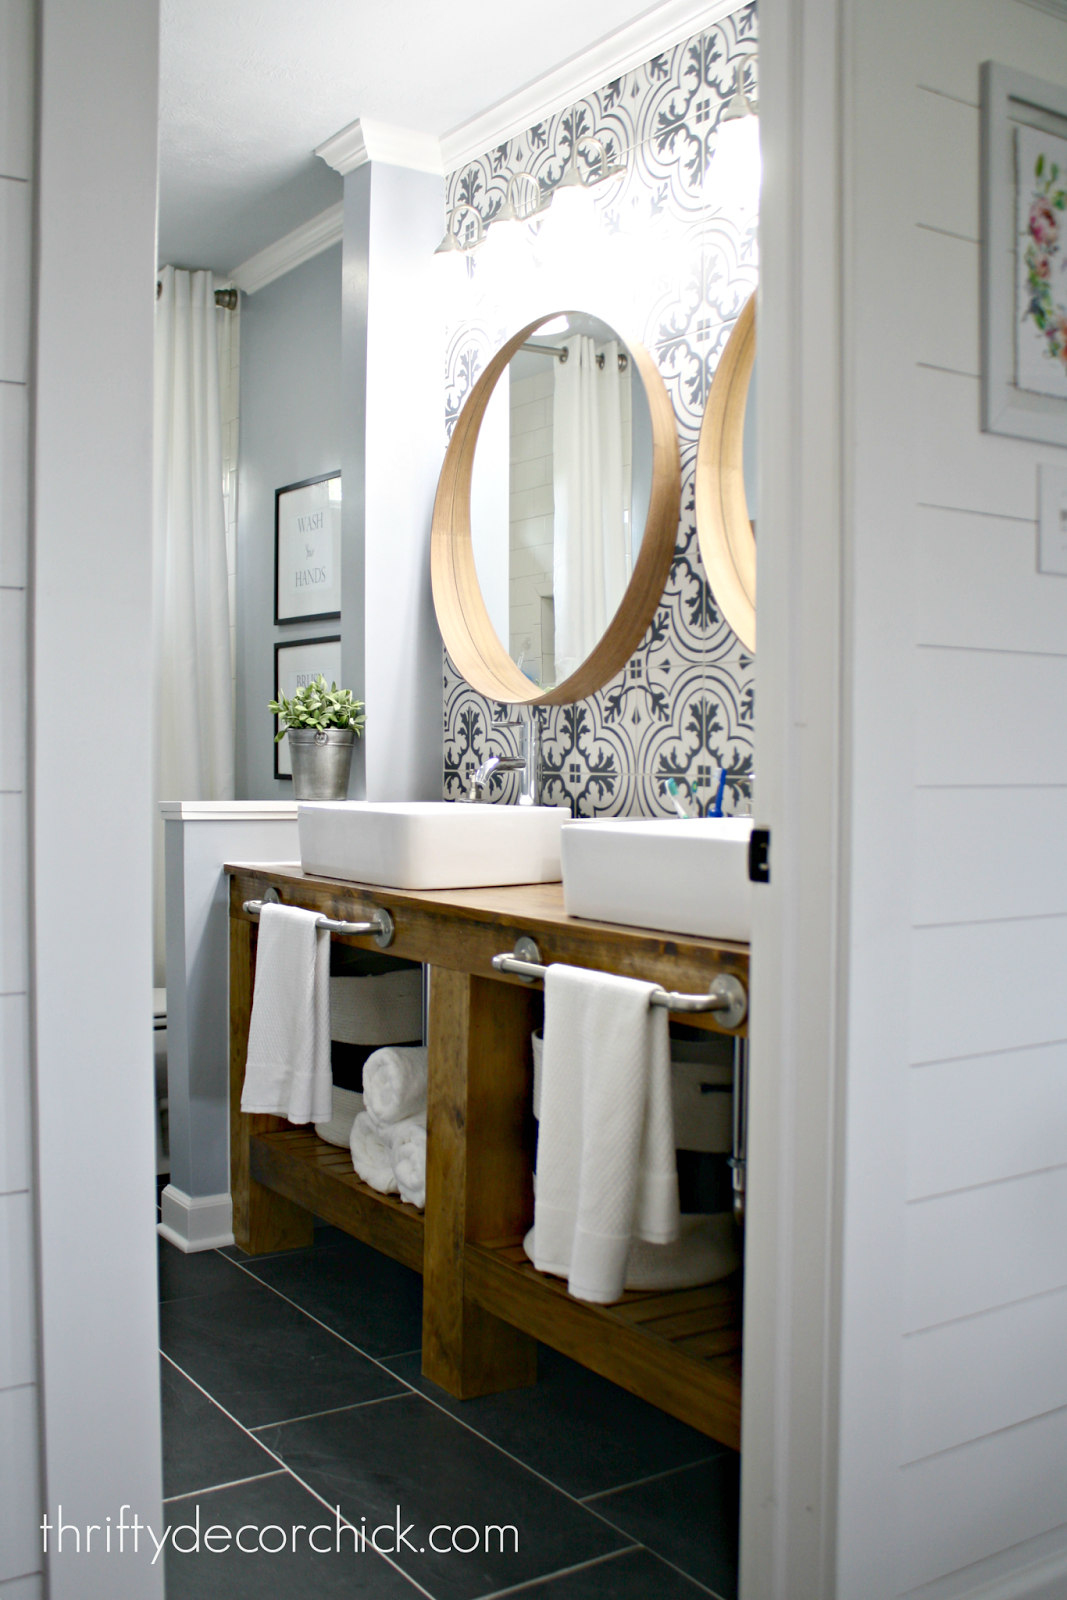 A Blog About Thrifty DIY, Decor And Design For The Home. Inexpensive Decorating  Ideas